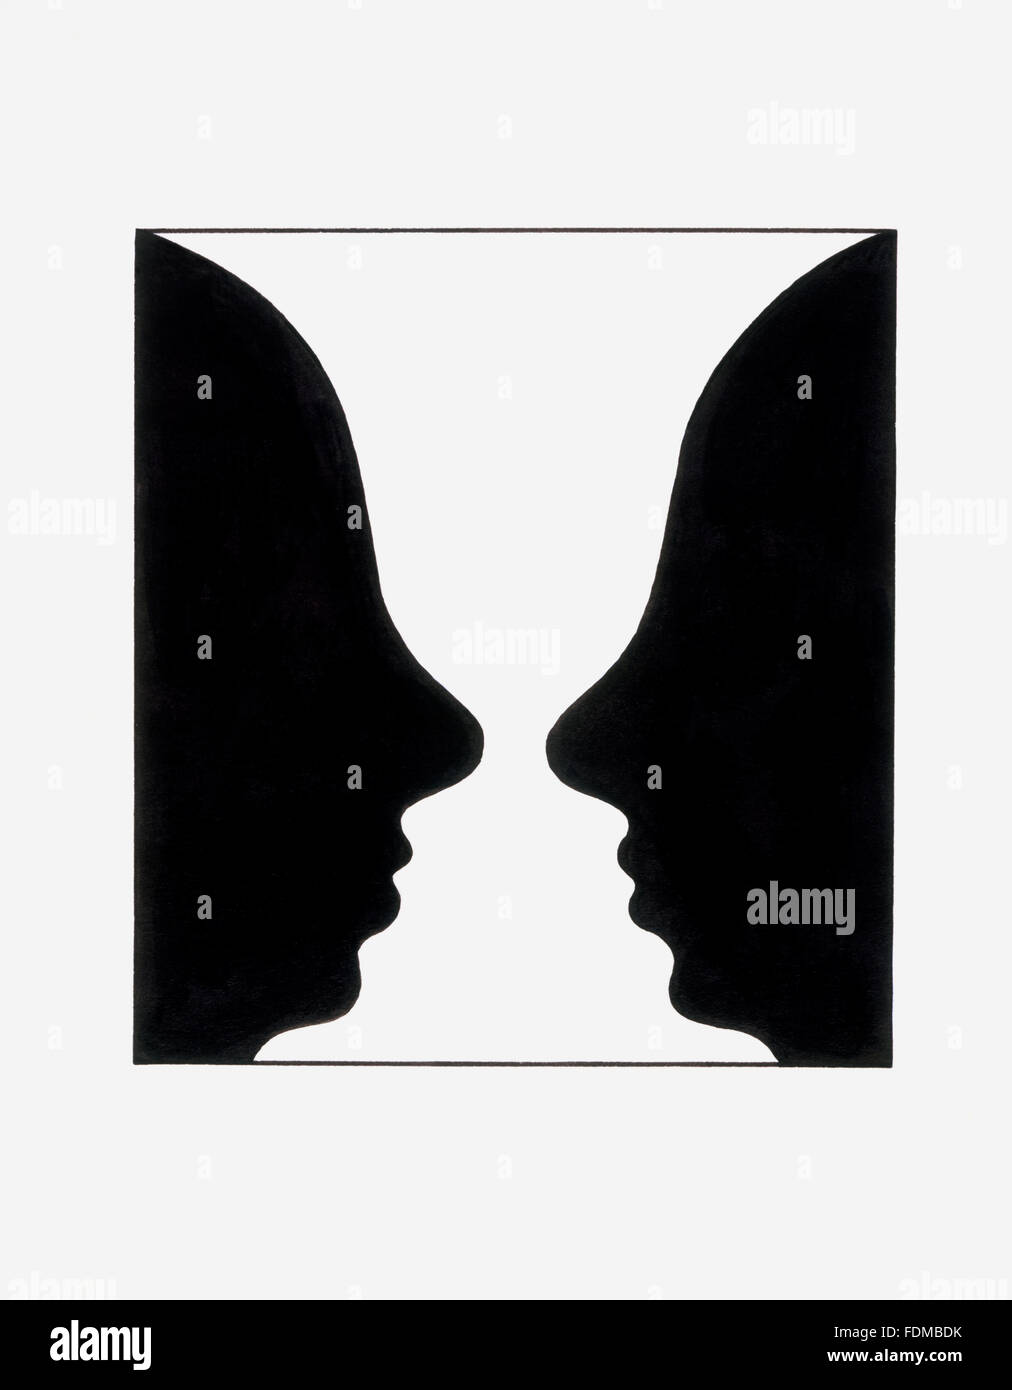 Reversible figure, forming shape of two faces or vase-like shape Stock Photo